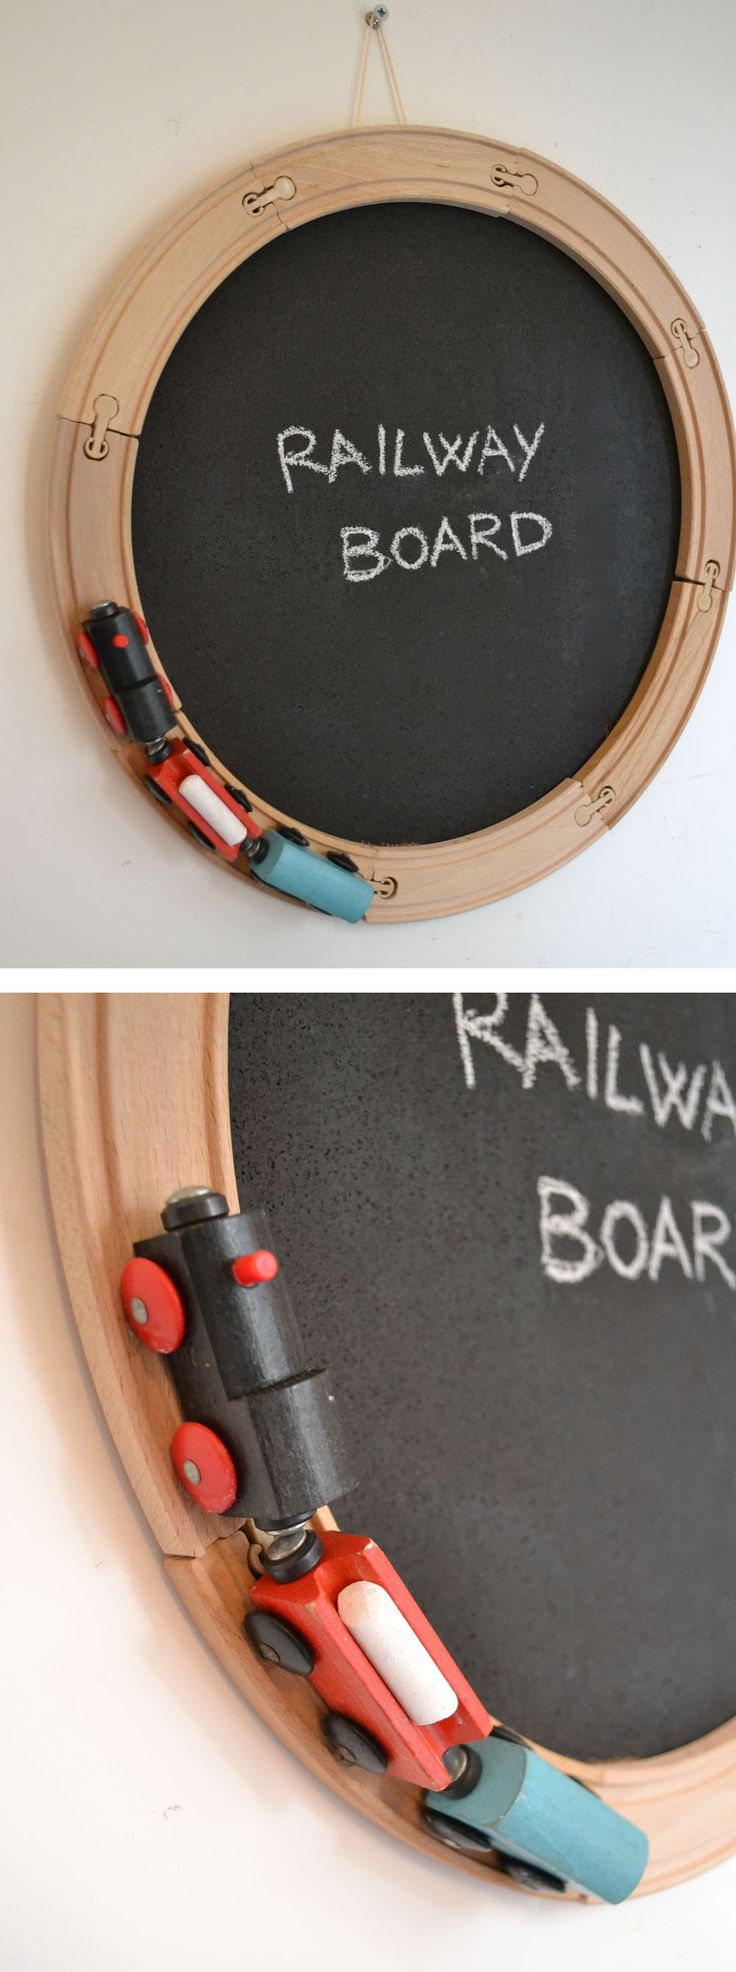 #DIY: railway board #Train #Chalk Board http://www.kidsdinge.com